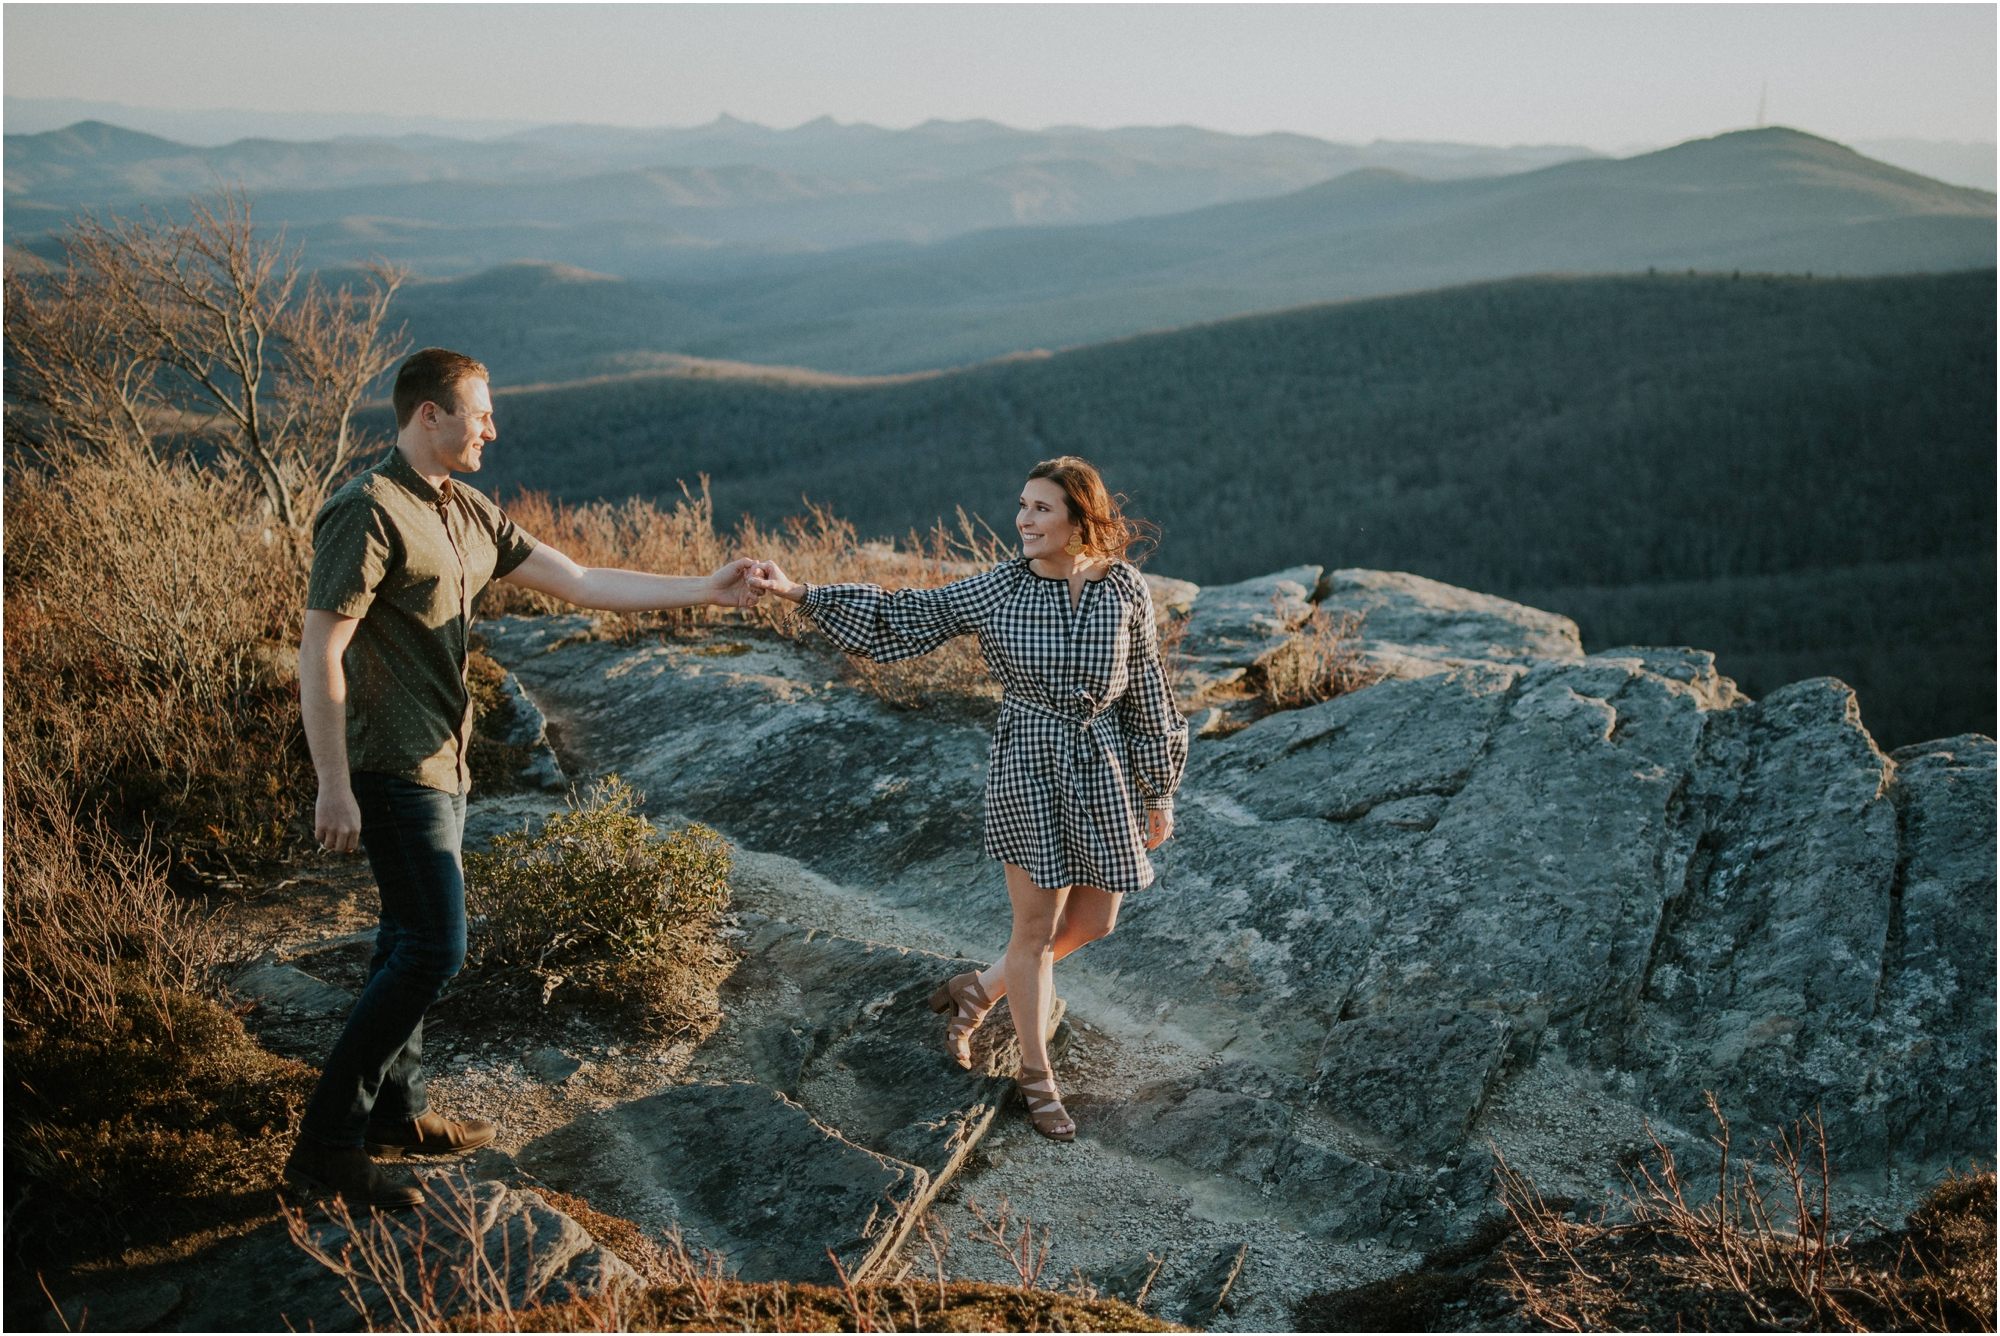 blue-ridge-parkway-engagement-session-north-carolina-boone-blowing-rock-northeast-tennessee-katy-sergent-photography_0017.jpg